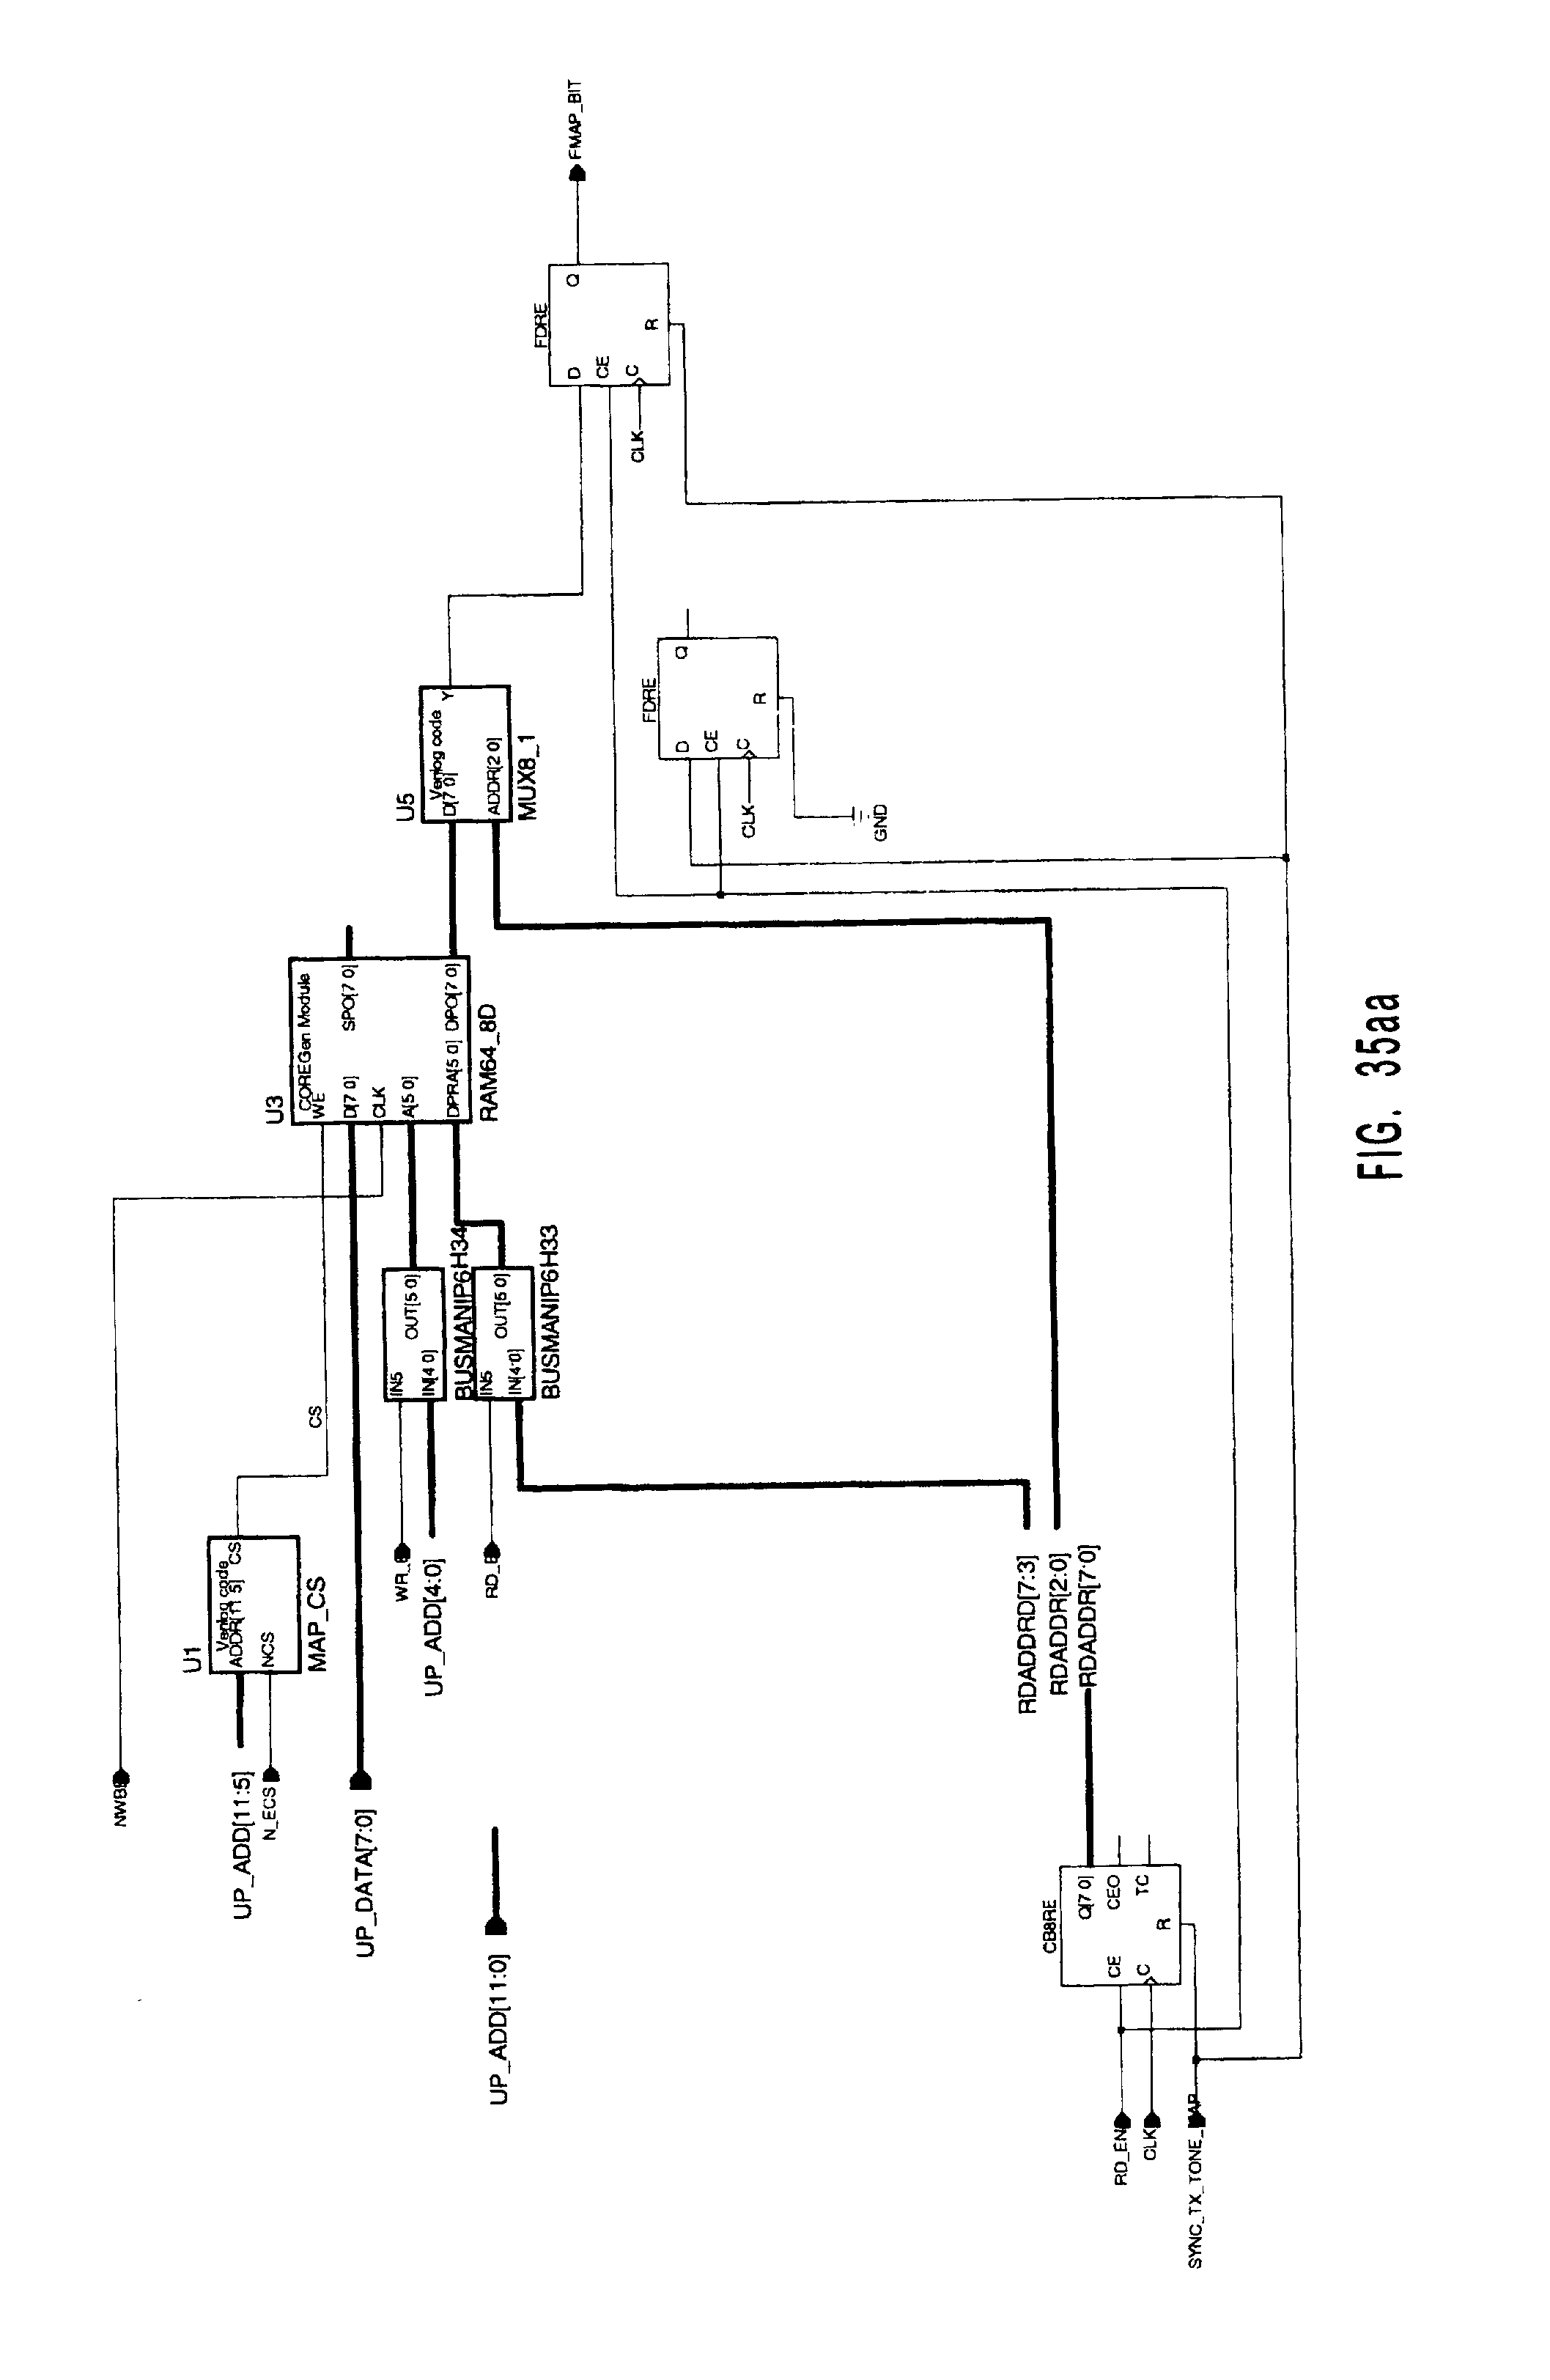 2000 Chevy Blazer Encoder Motor Wiring Diagram 2000 Chevy